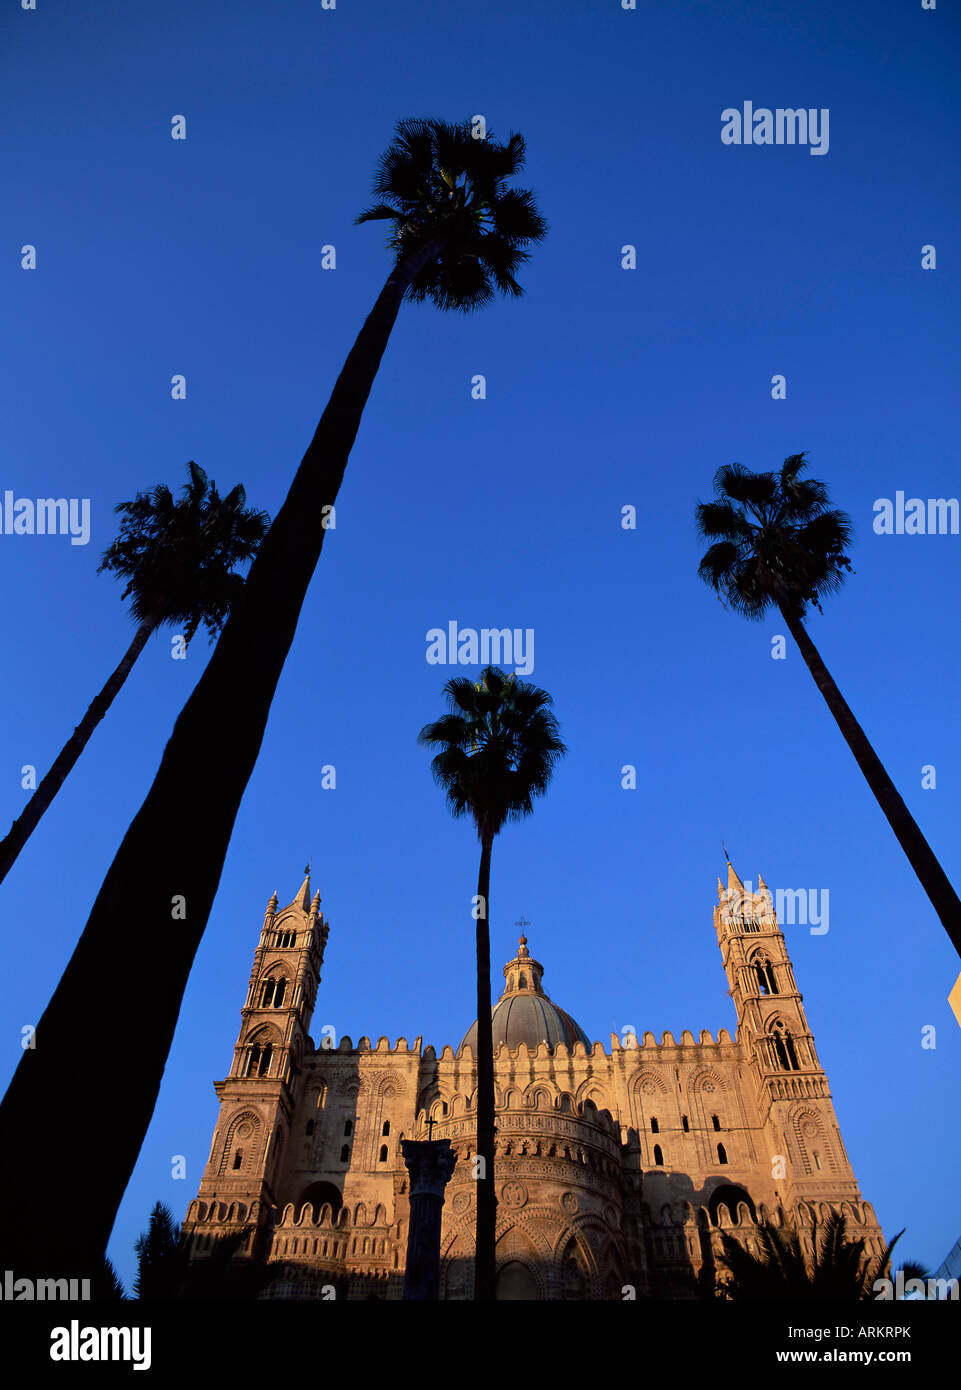 Christian cathedral and palm trees, Palermo, Sicily, Italy, Mediterranean, Europe Stock Photo